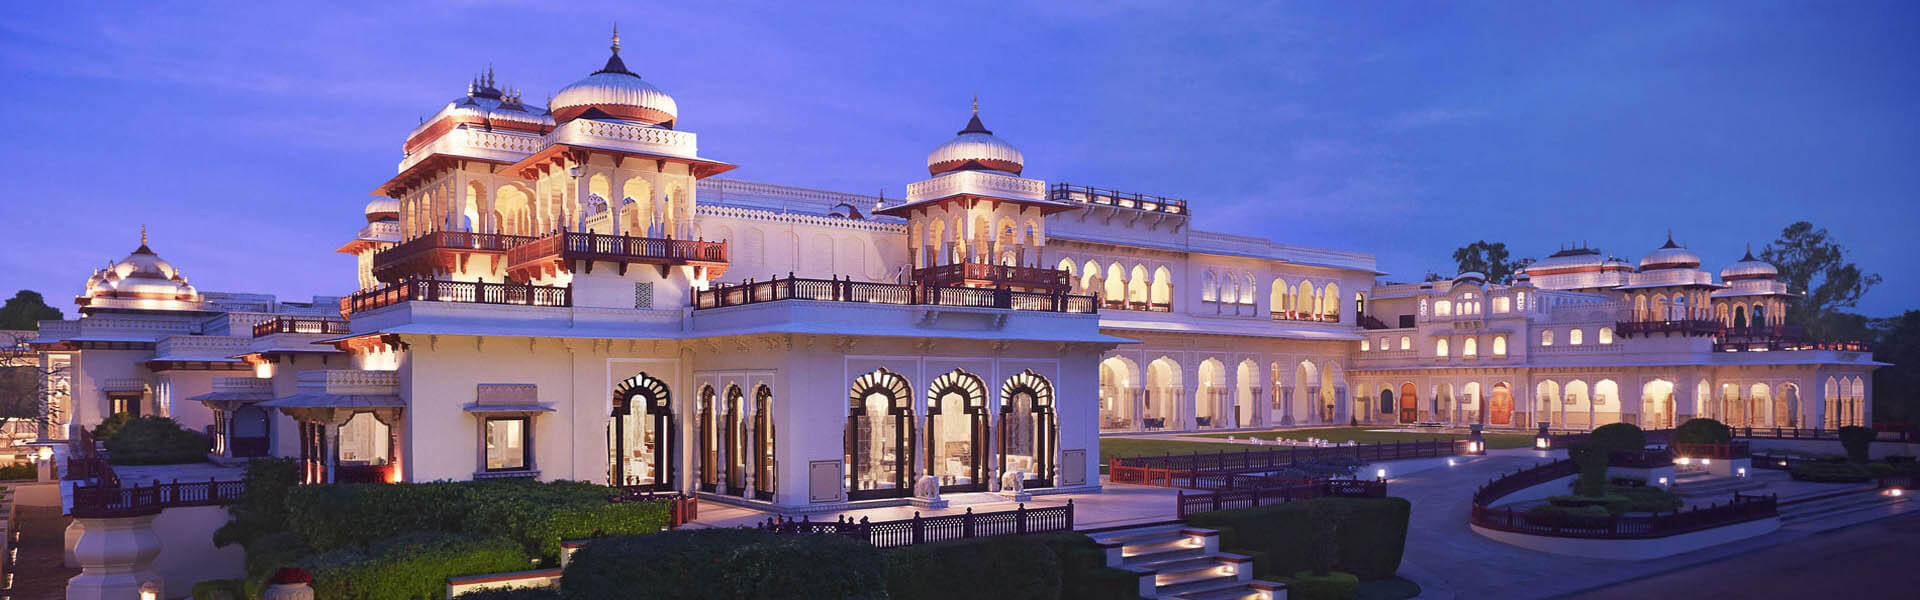 The Heritage of India,india tour,luxury train journey